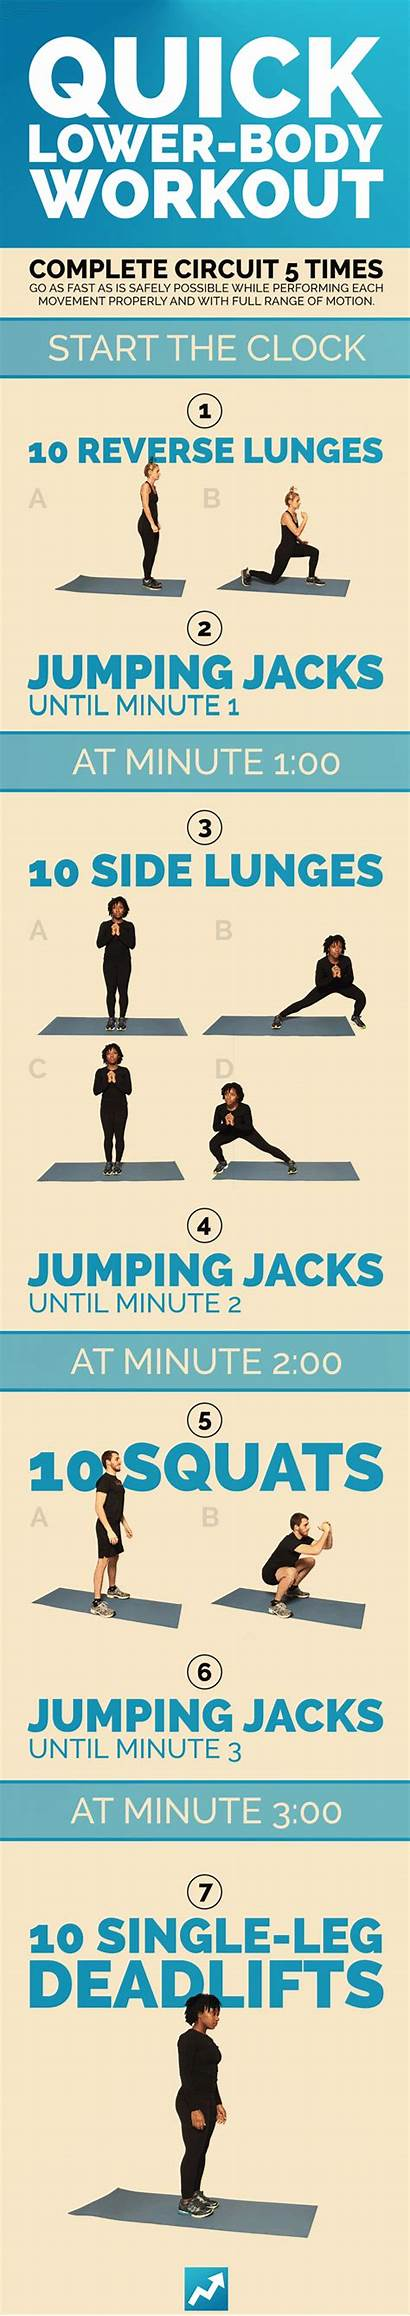 Workout Workouts Total Quick Exercises Lower Equipment